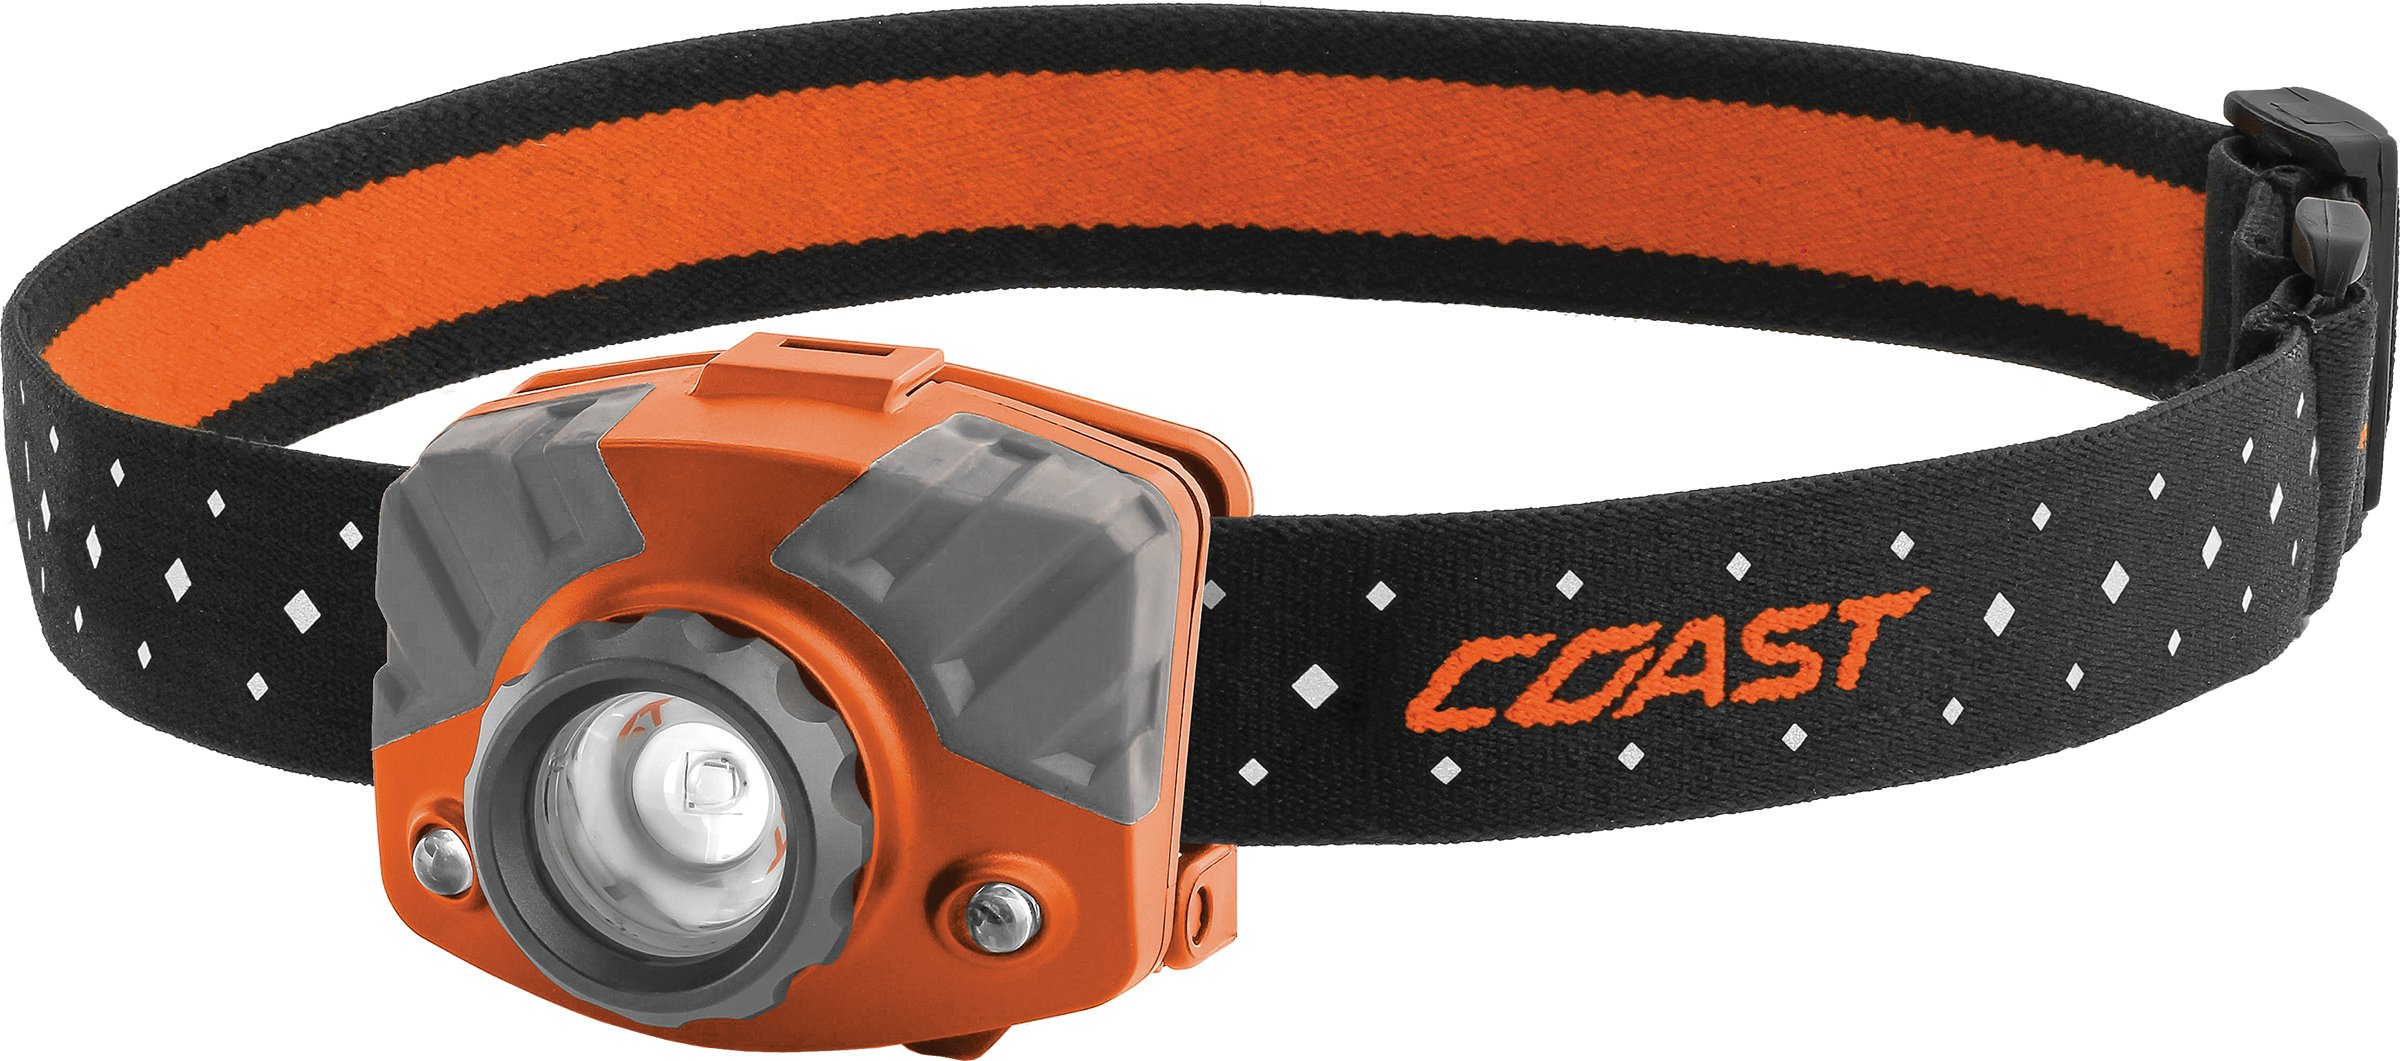 COAST FL75 435 Lumen Dual Color Focusing LED Headlamp with Twist Focus and Reflective Strap by Coast